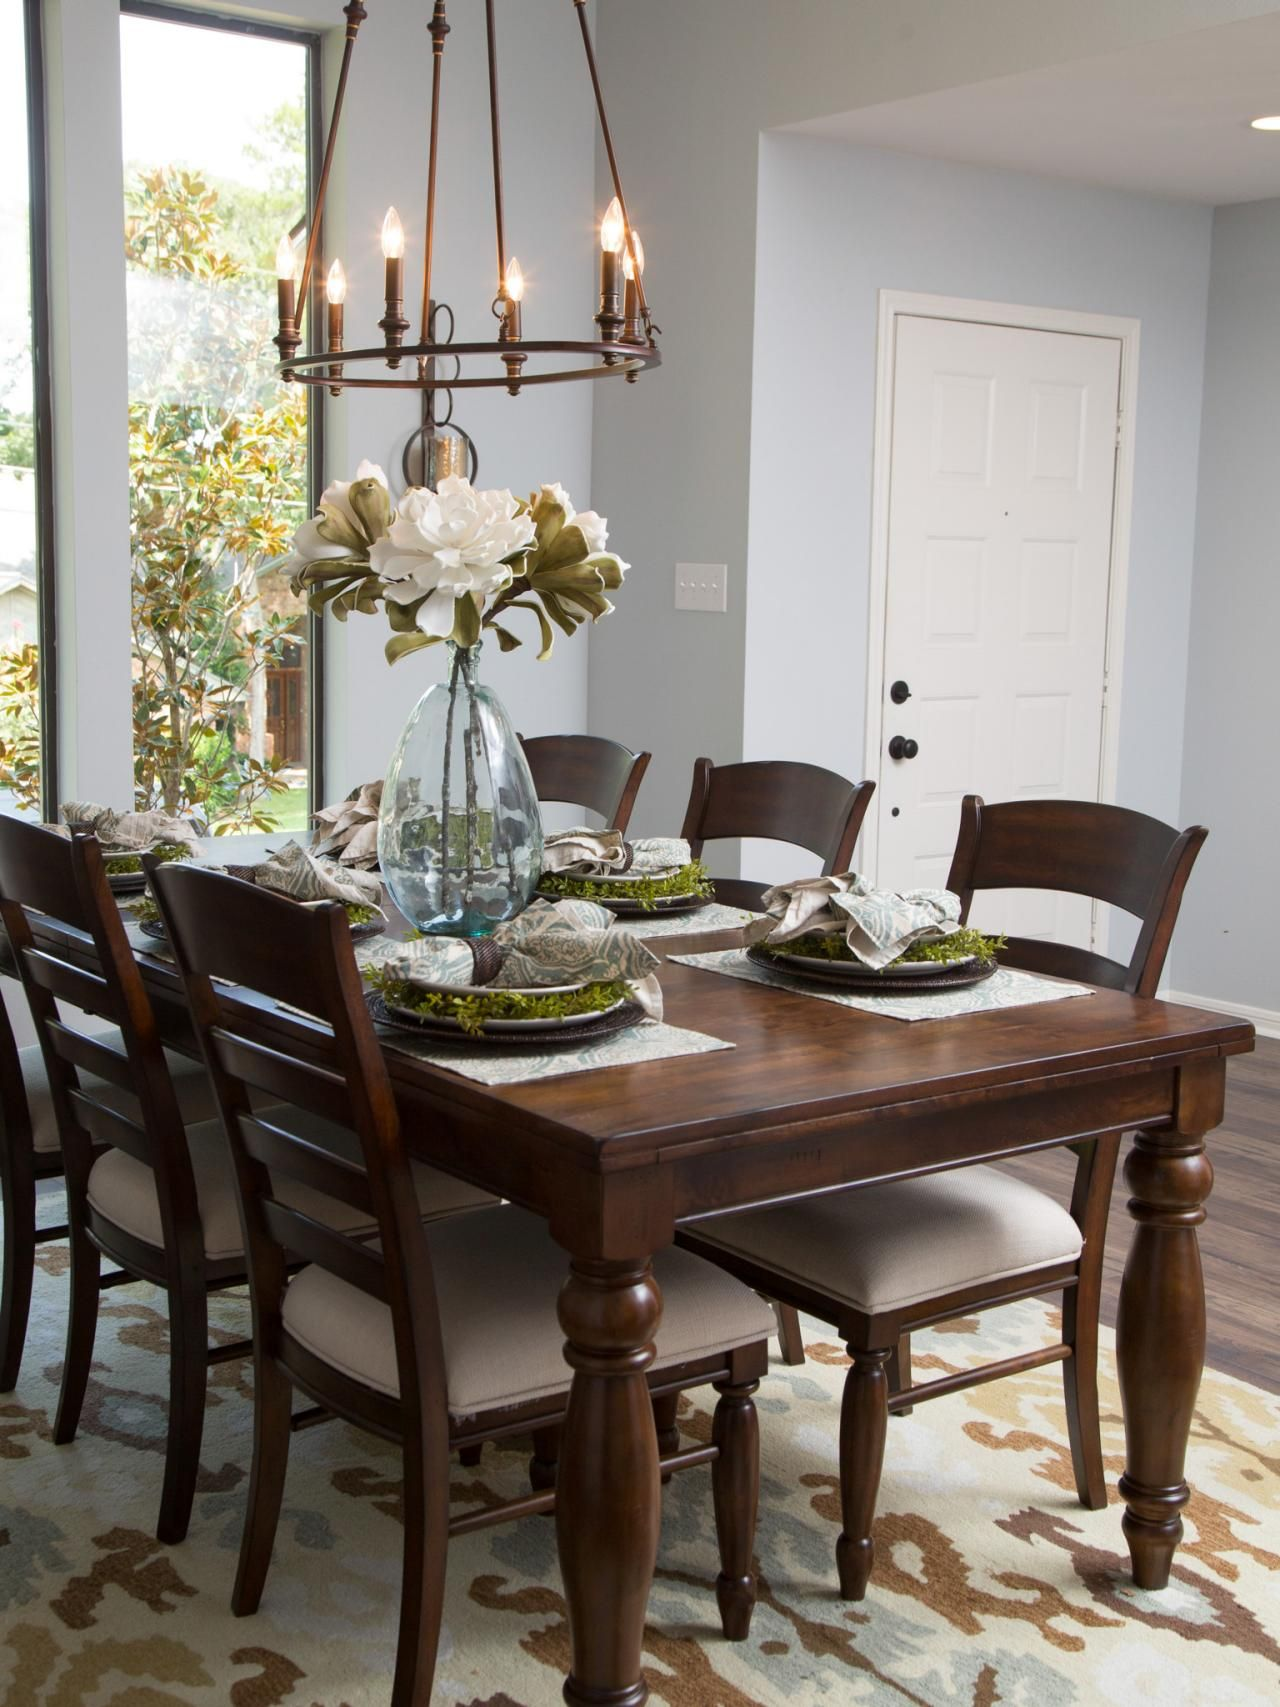 Fixer Upper A Rush To Renovate An 80s Rancher Dining Room Design Beautiful Dining Rooms Rustic Dining Furniture